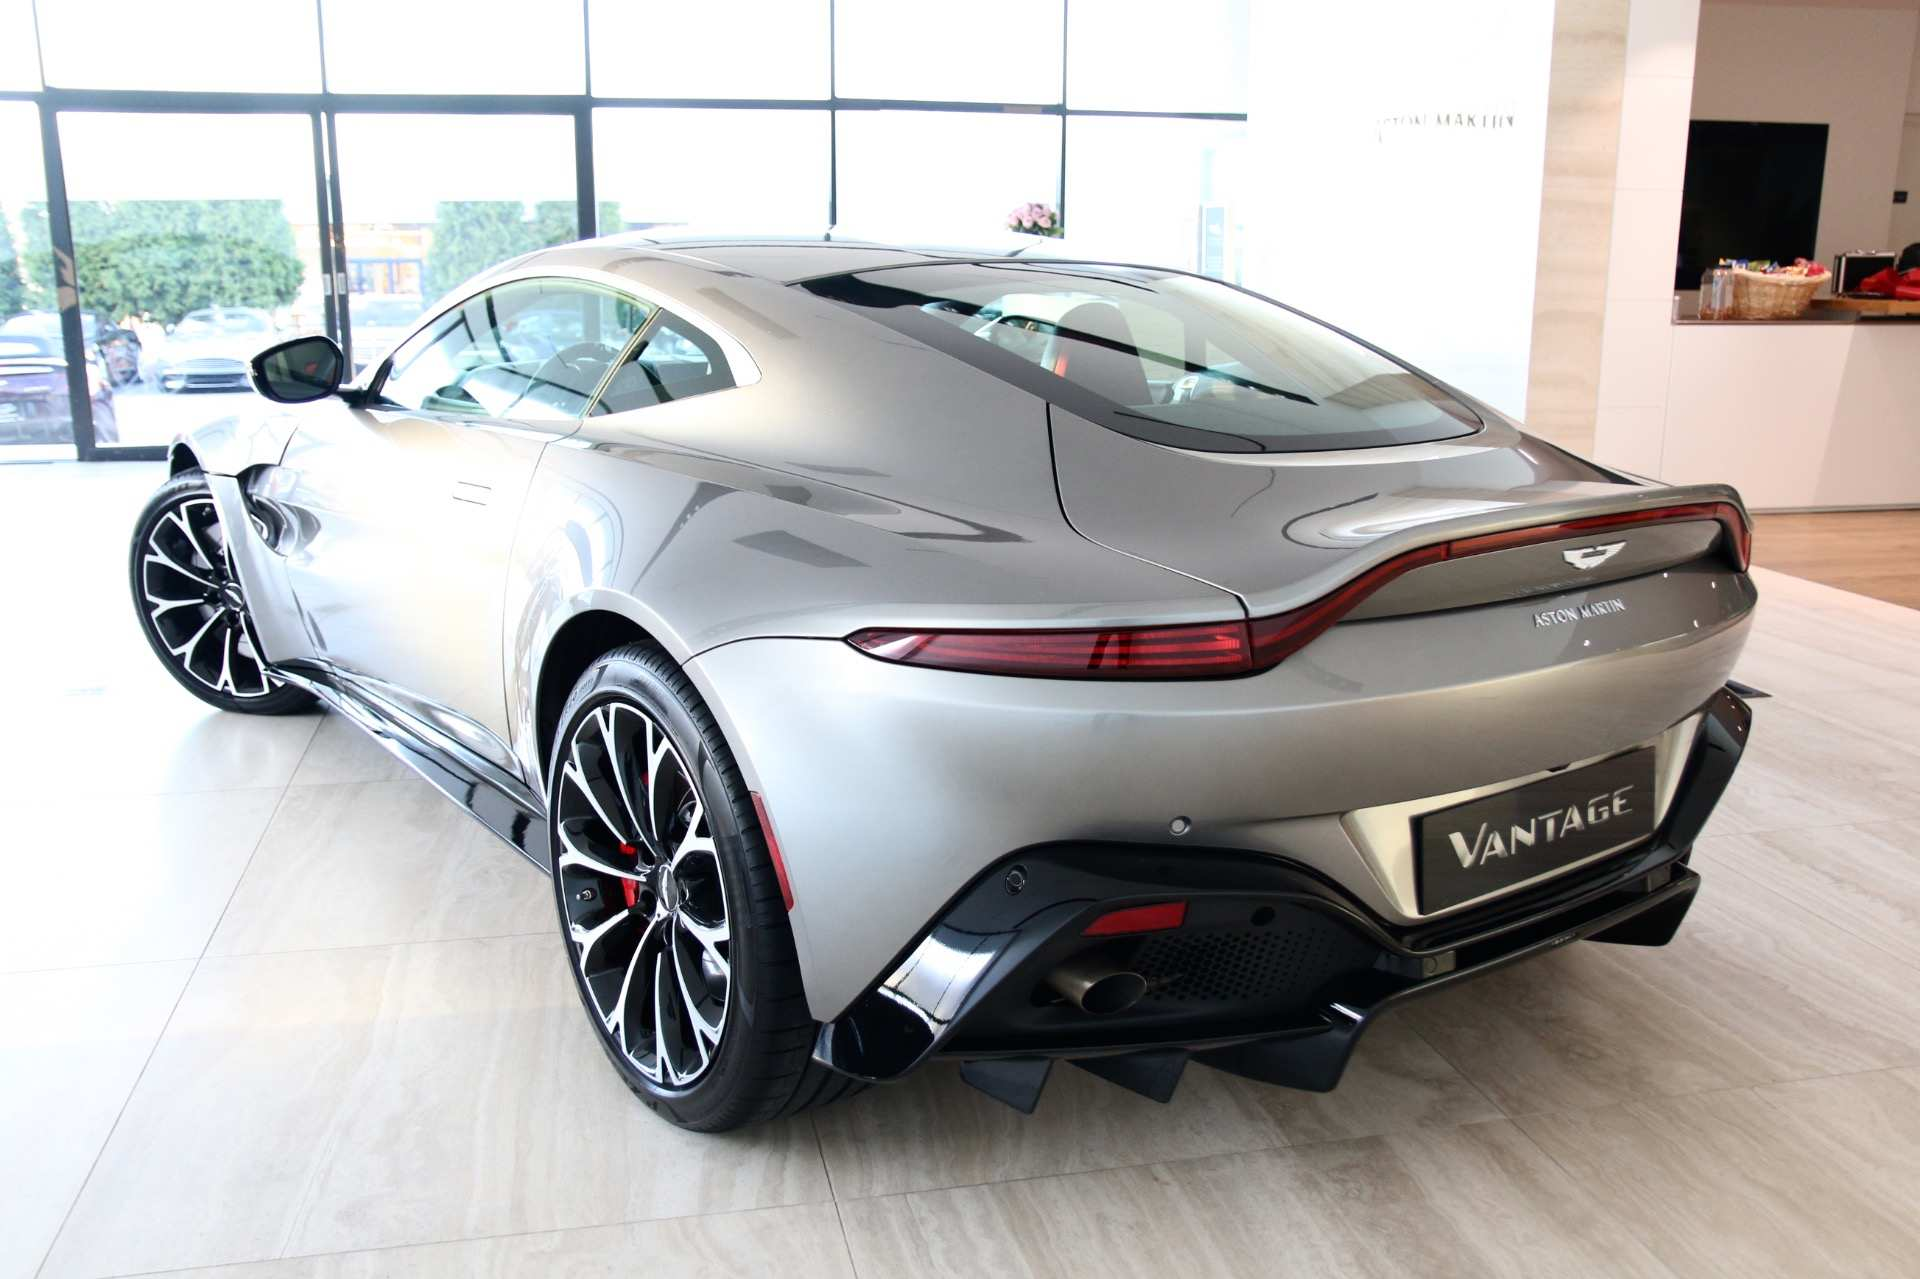 65 Gallery of 2019 Aston Martin Vantage For Sale Picture by 2019 Aston Martin Vantage For Sale